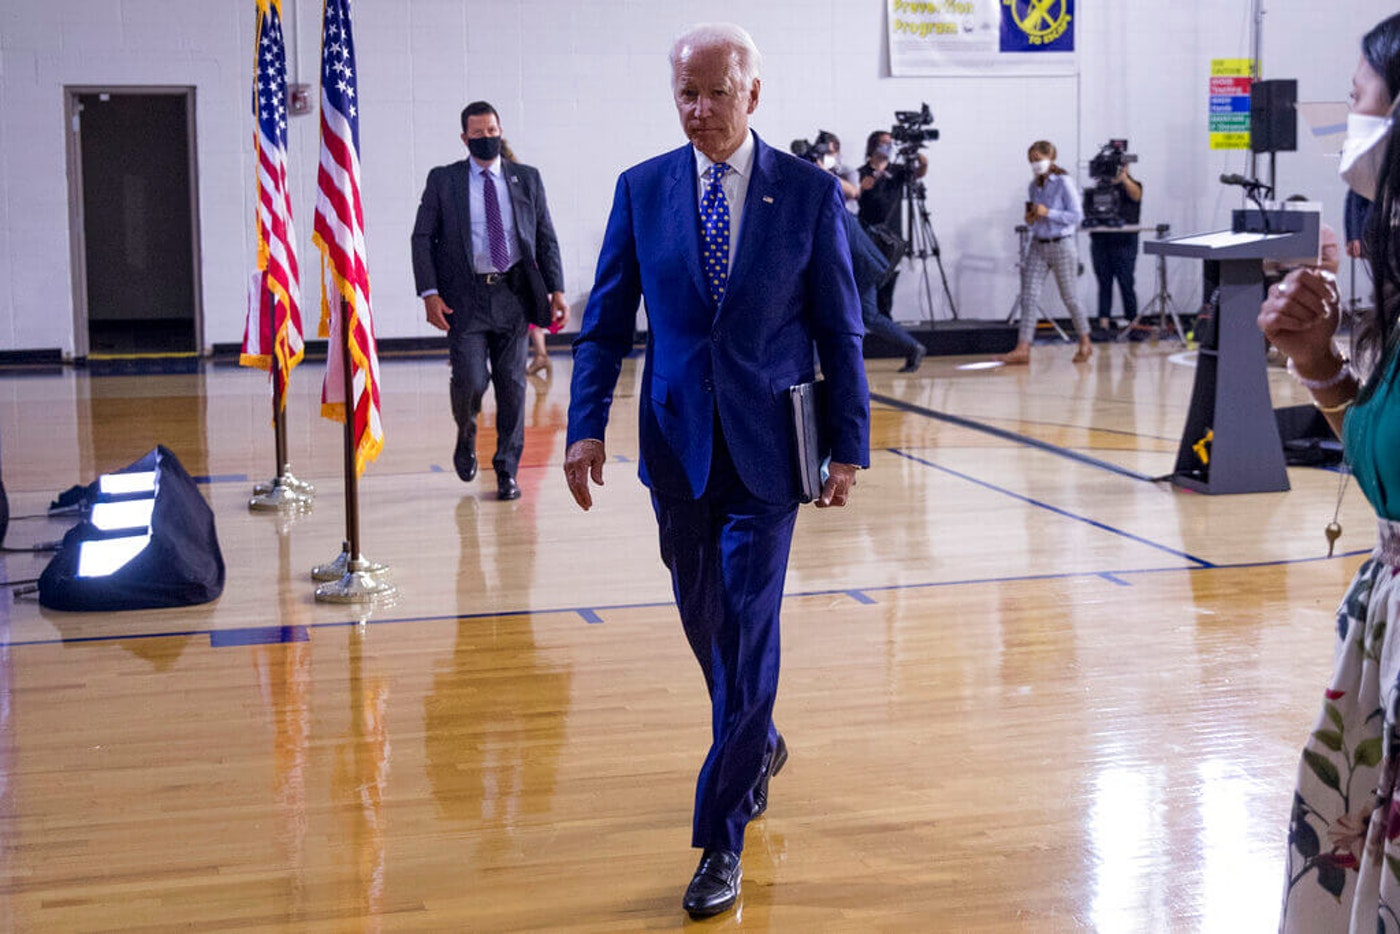 Democratic presidential candidate former Vice President Joe Biden leaves after speaking at a campaign event in Wilmington, Del., Tuesday, July 28, 2020.(AP Photo/Andrew Harnik)